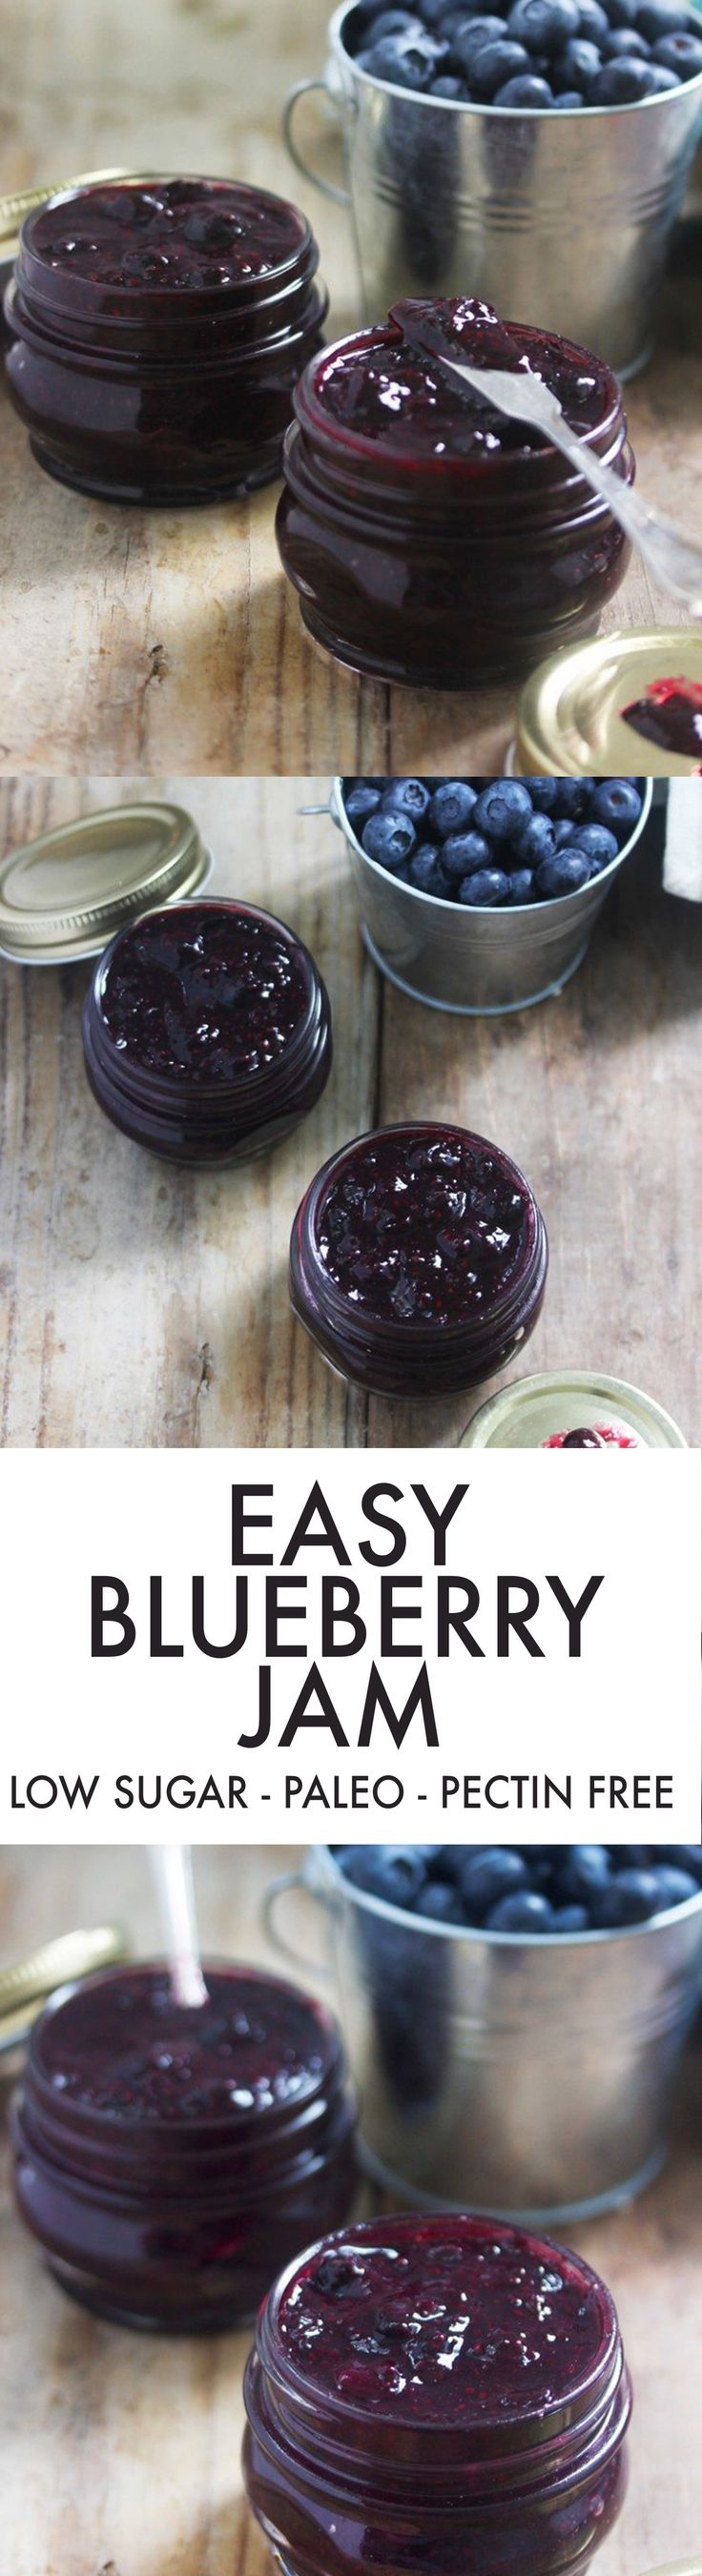 Easy Blueberry Jam {Low-sugar, pectin-free} | Lexi's Clean Kitchen